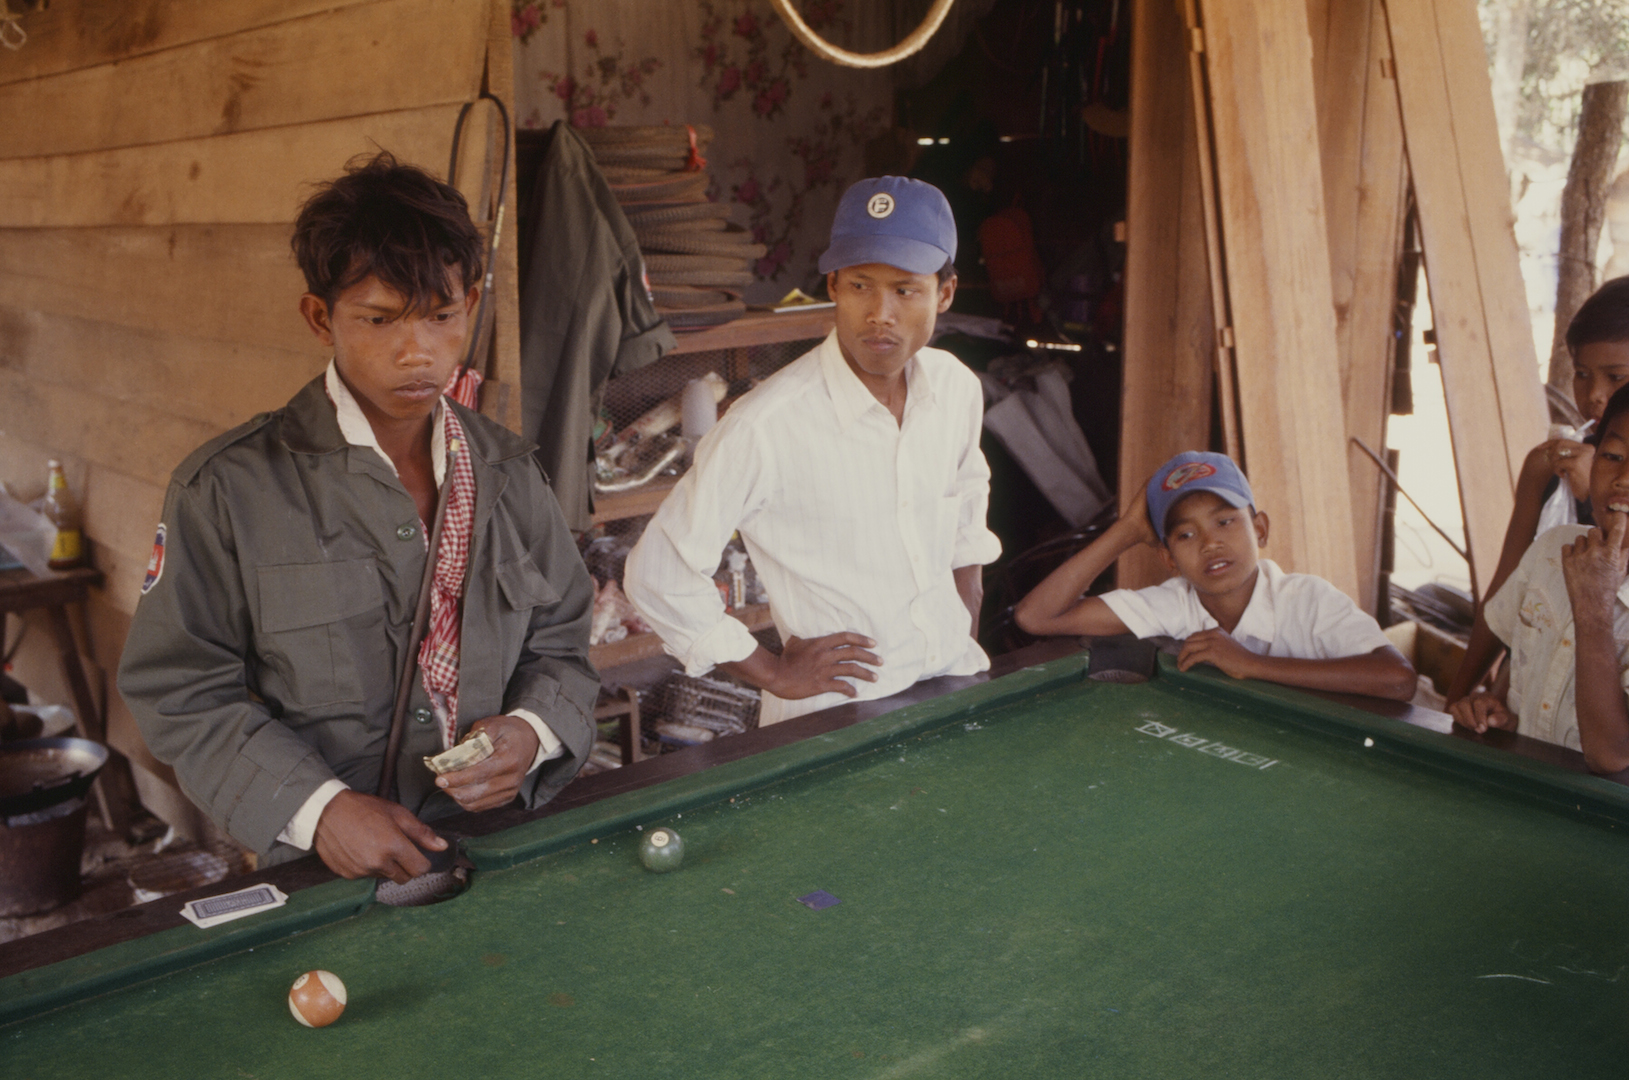 Billard à An Long Ven au Cambodge. (Copyright : Bruno Birolli)